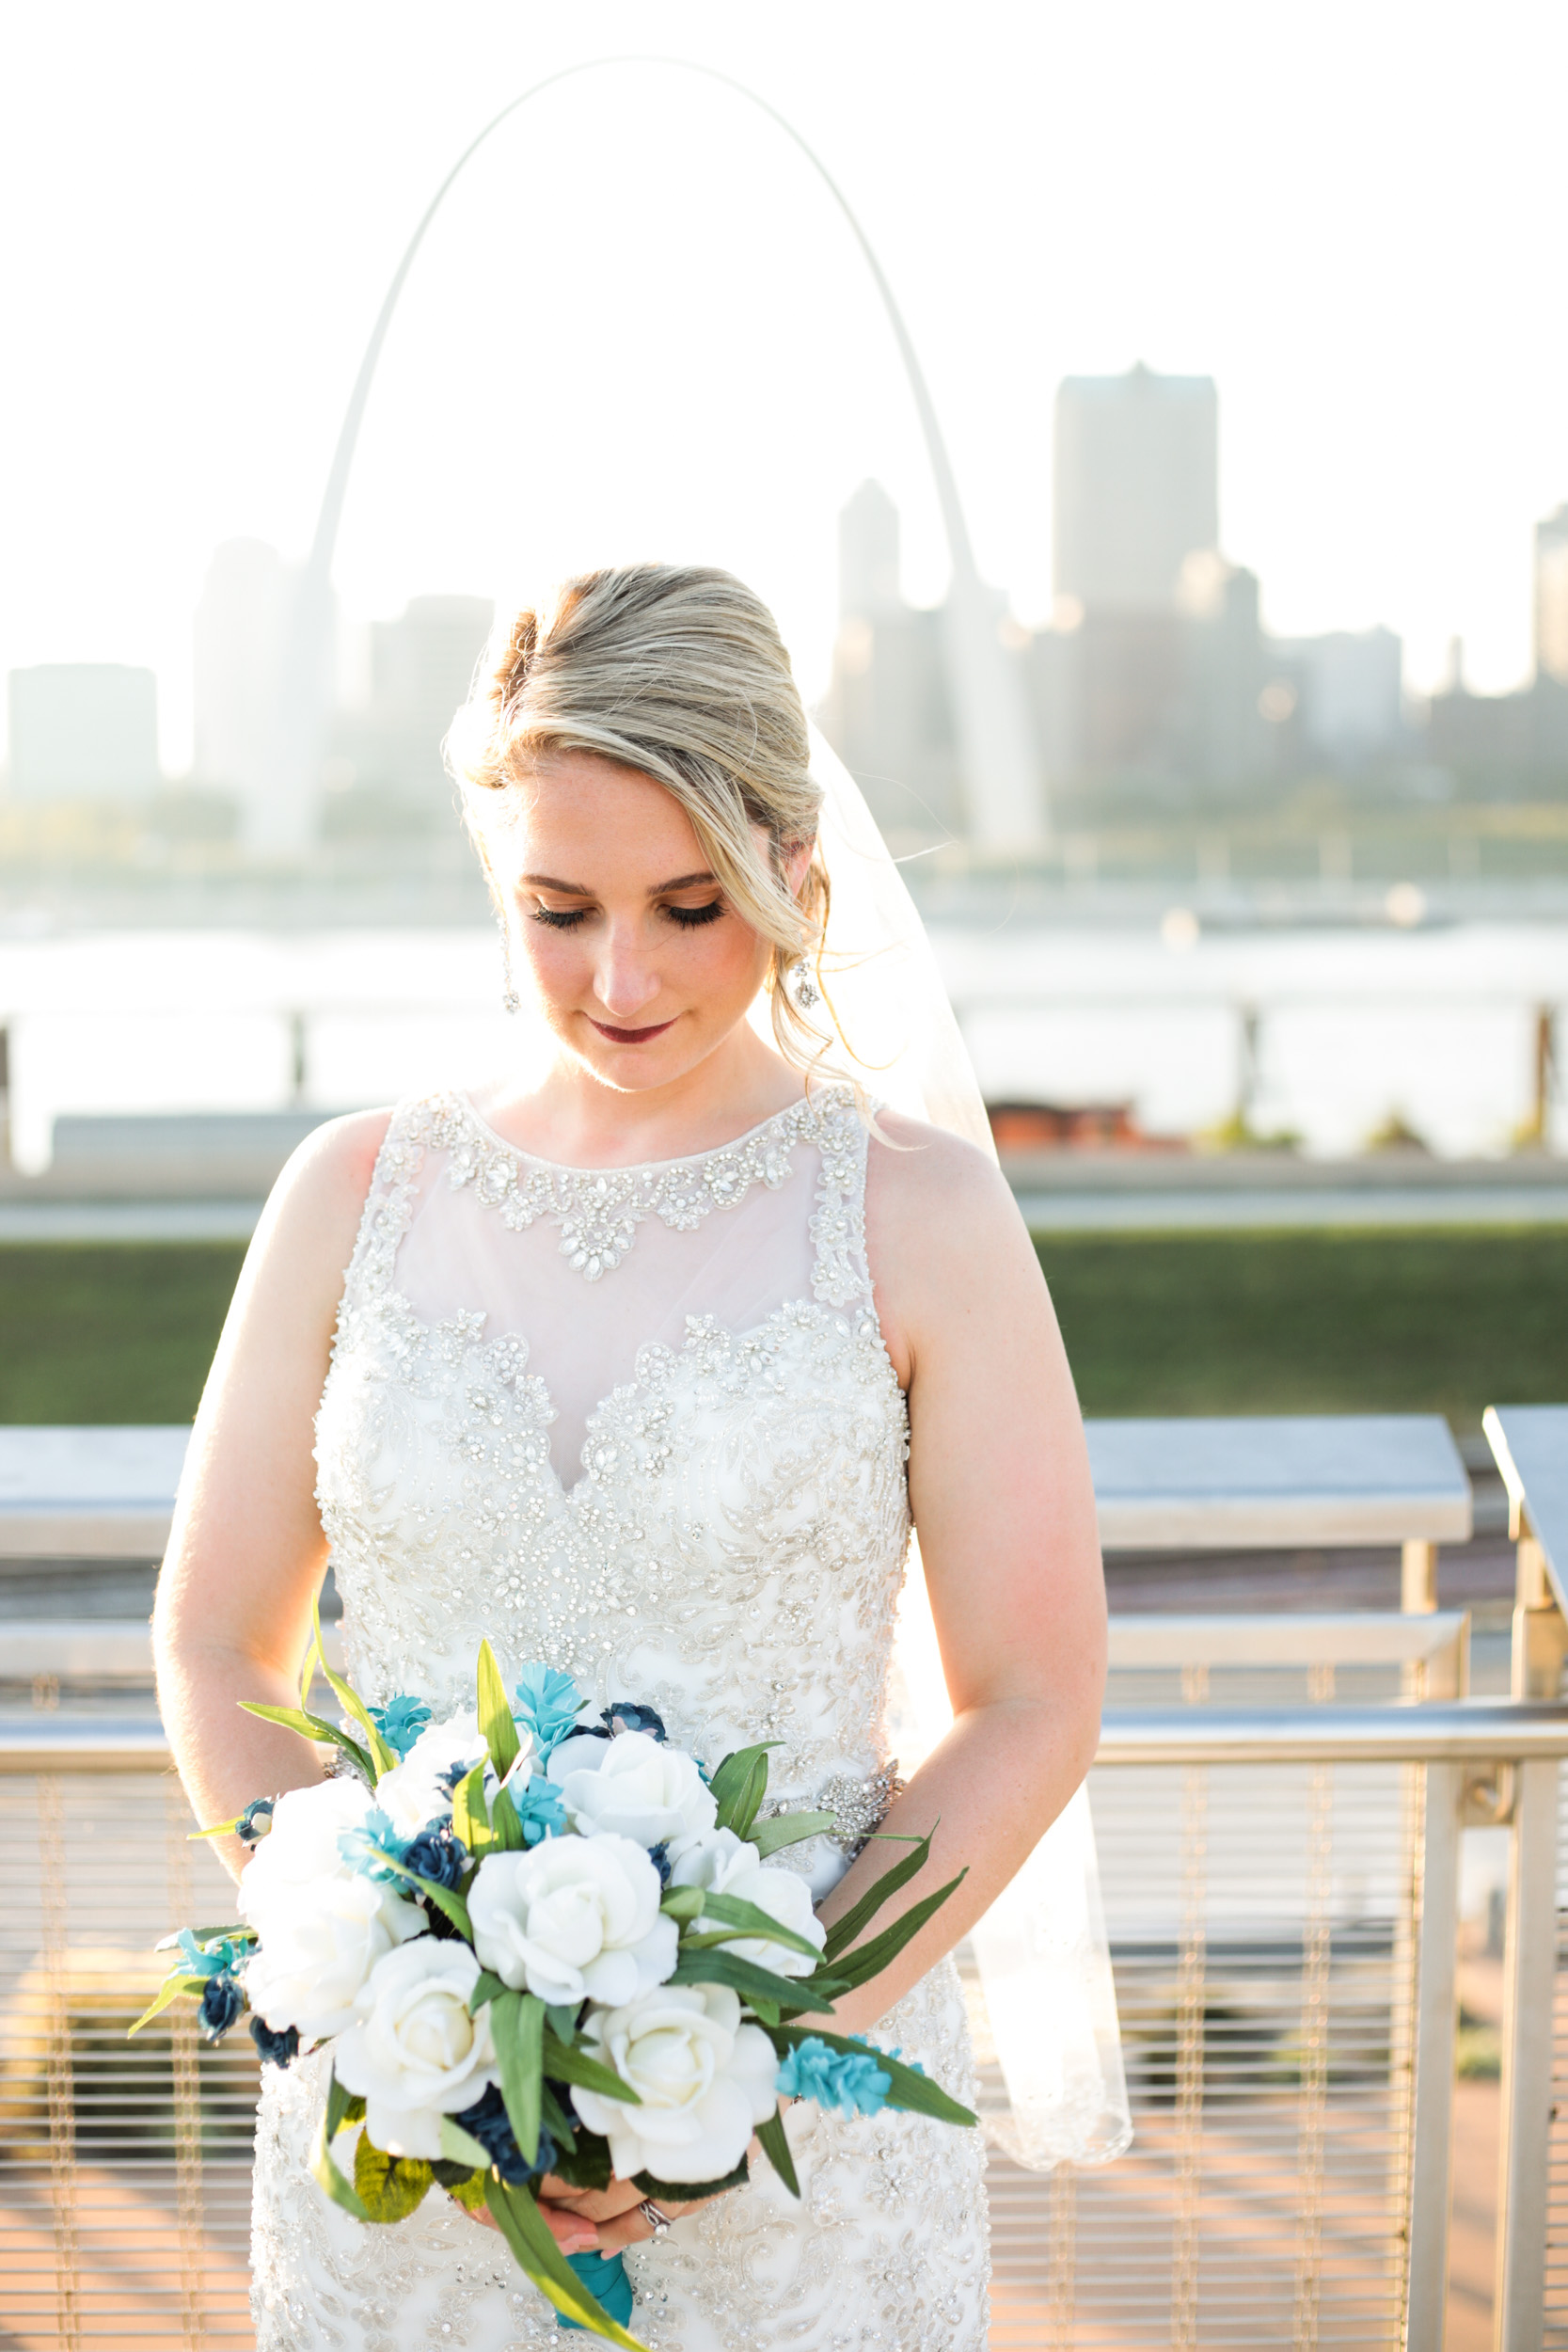 Winstanley Baptist Church Wedding and Four Points by Sheraton Reception Photos by St Louis Wedding Photographers and Videographers Oldani Photography 163.jpg